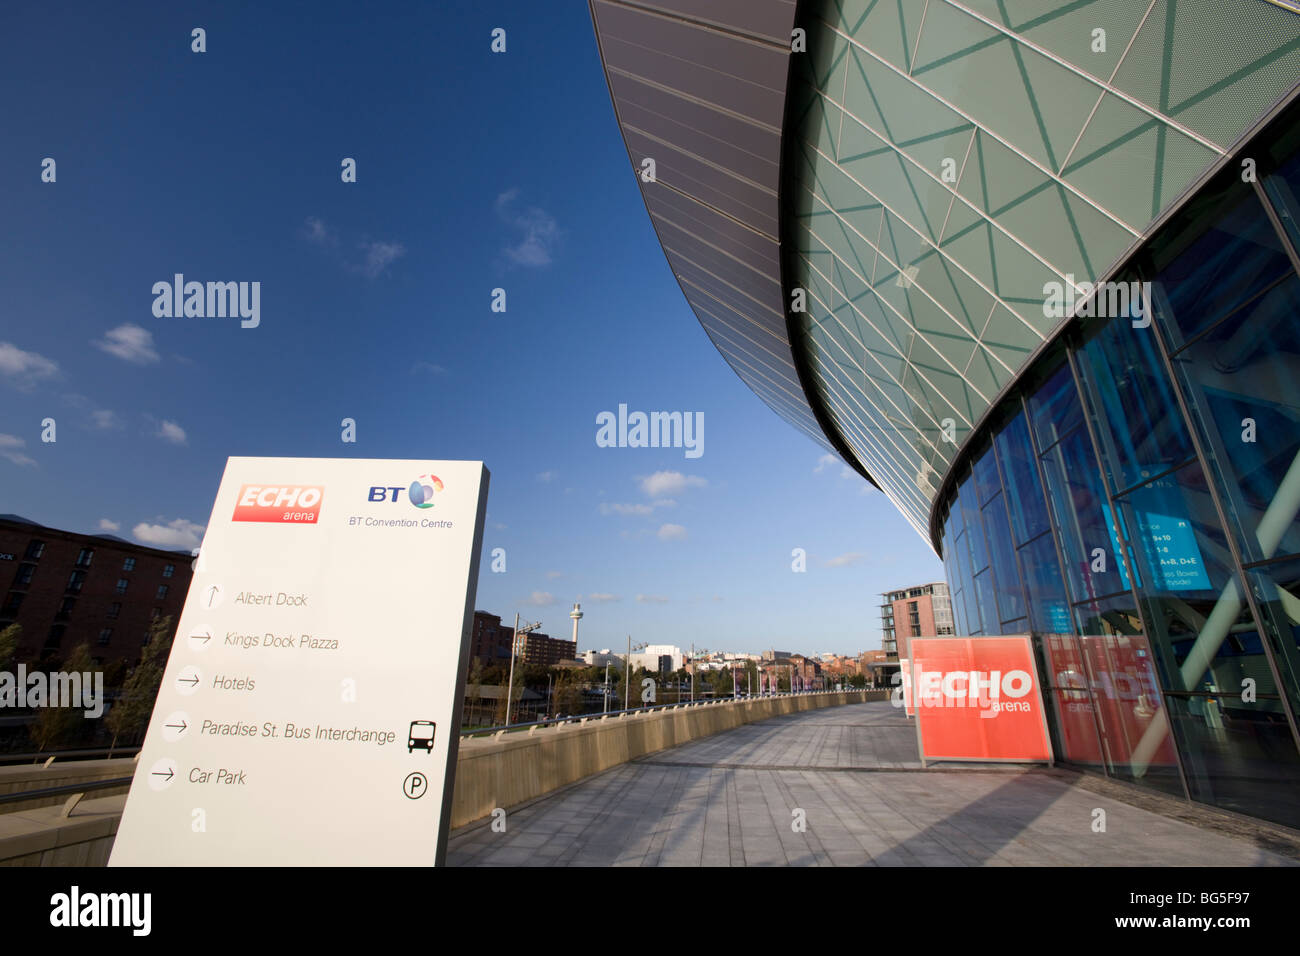 Echo Arena, Liverpool, UK - Stock Image